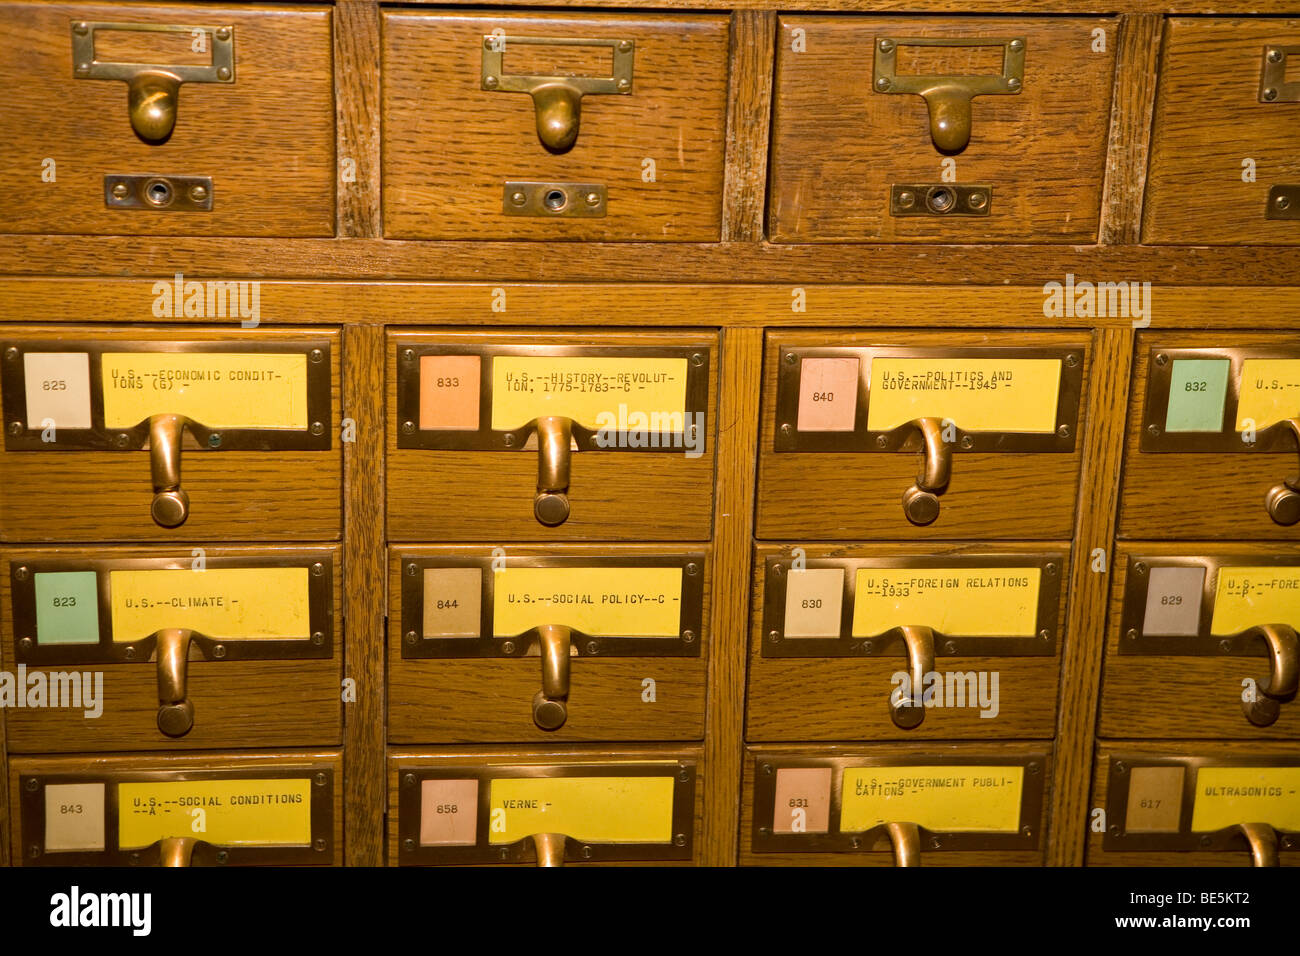 Detail of old-fashioned library card catalog drawers with labels ...